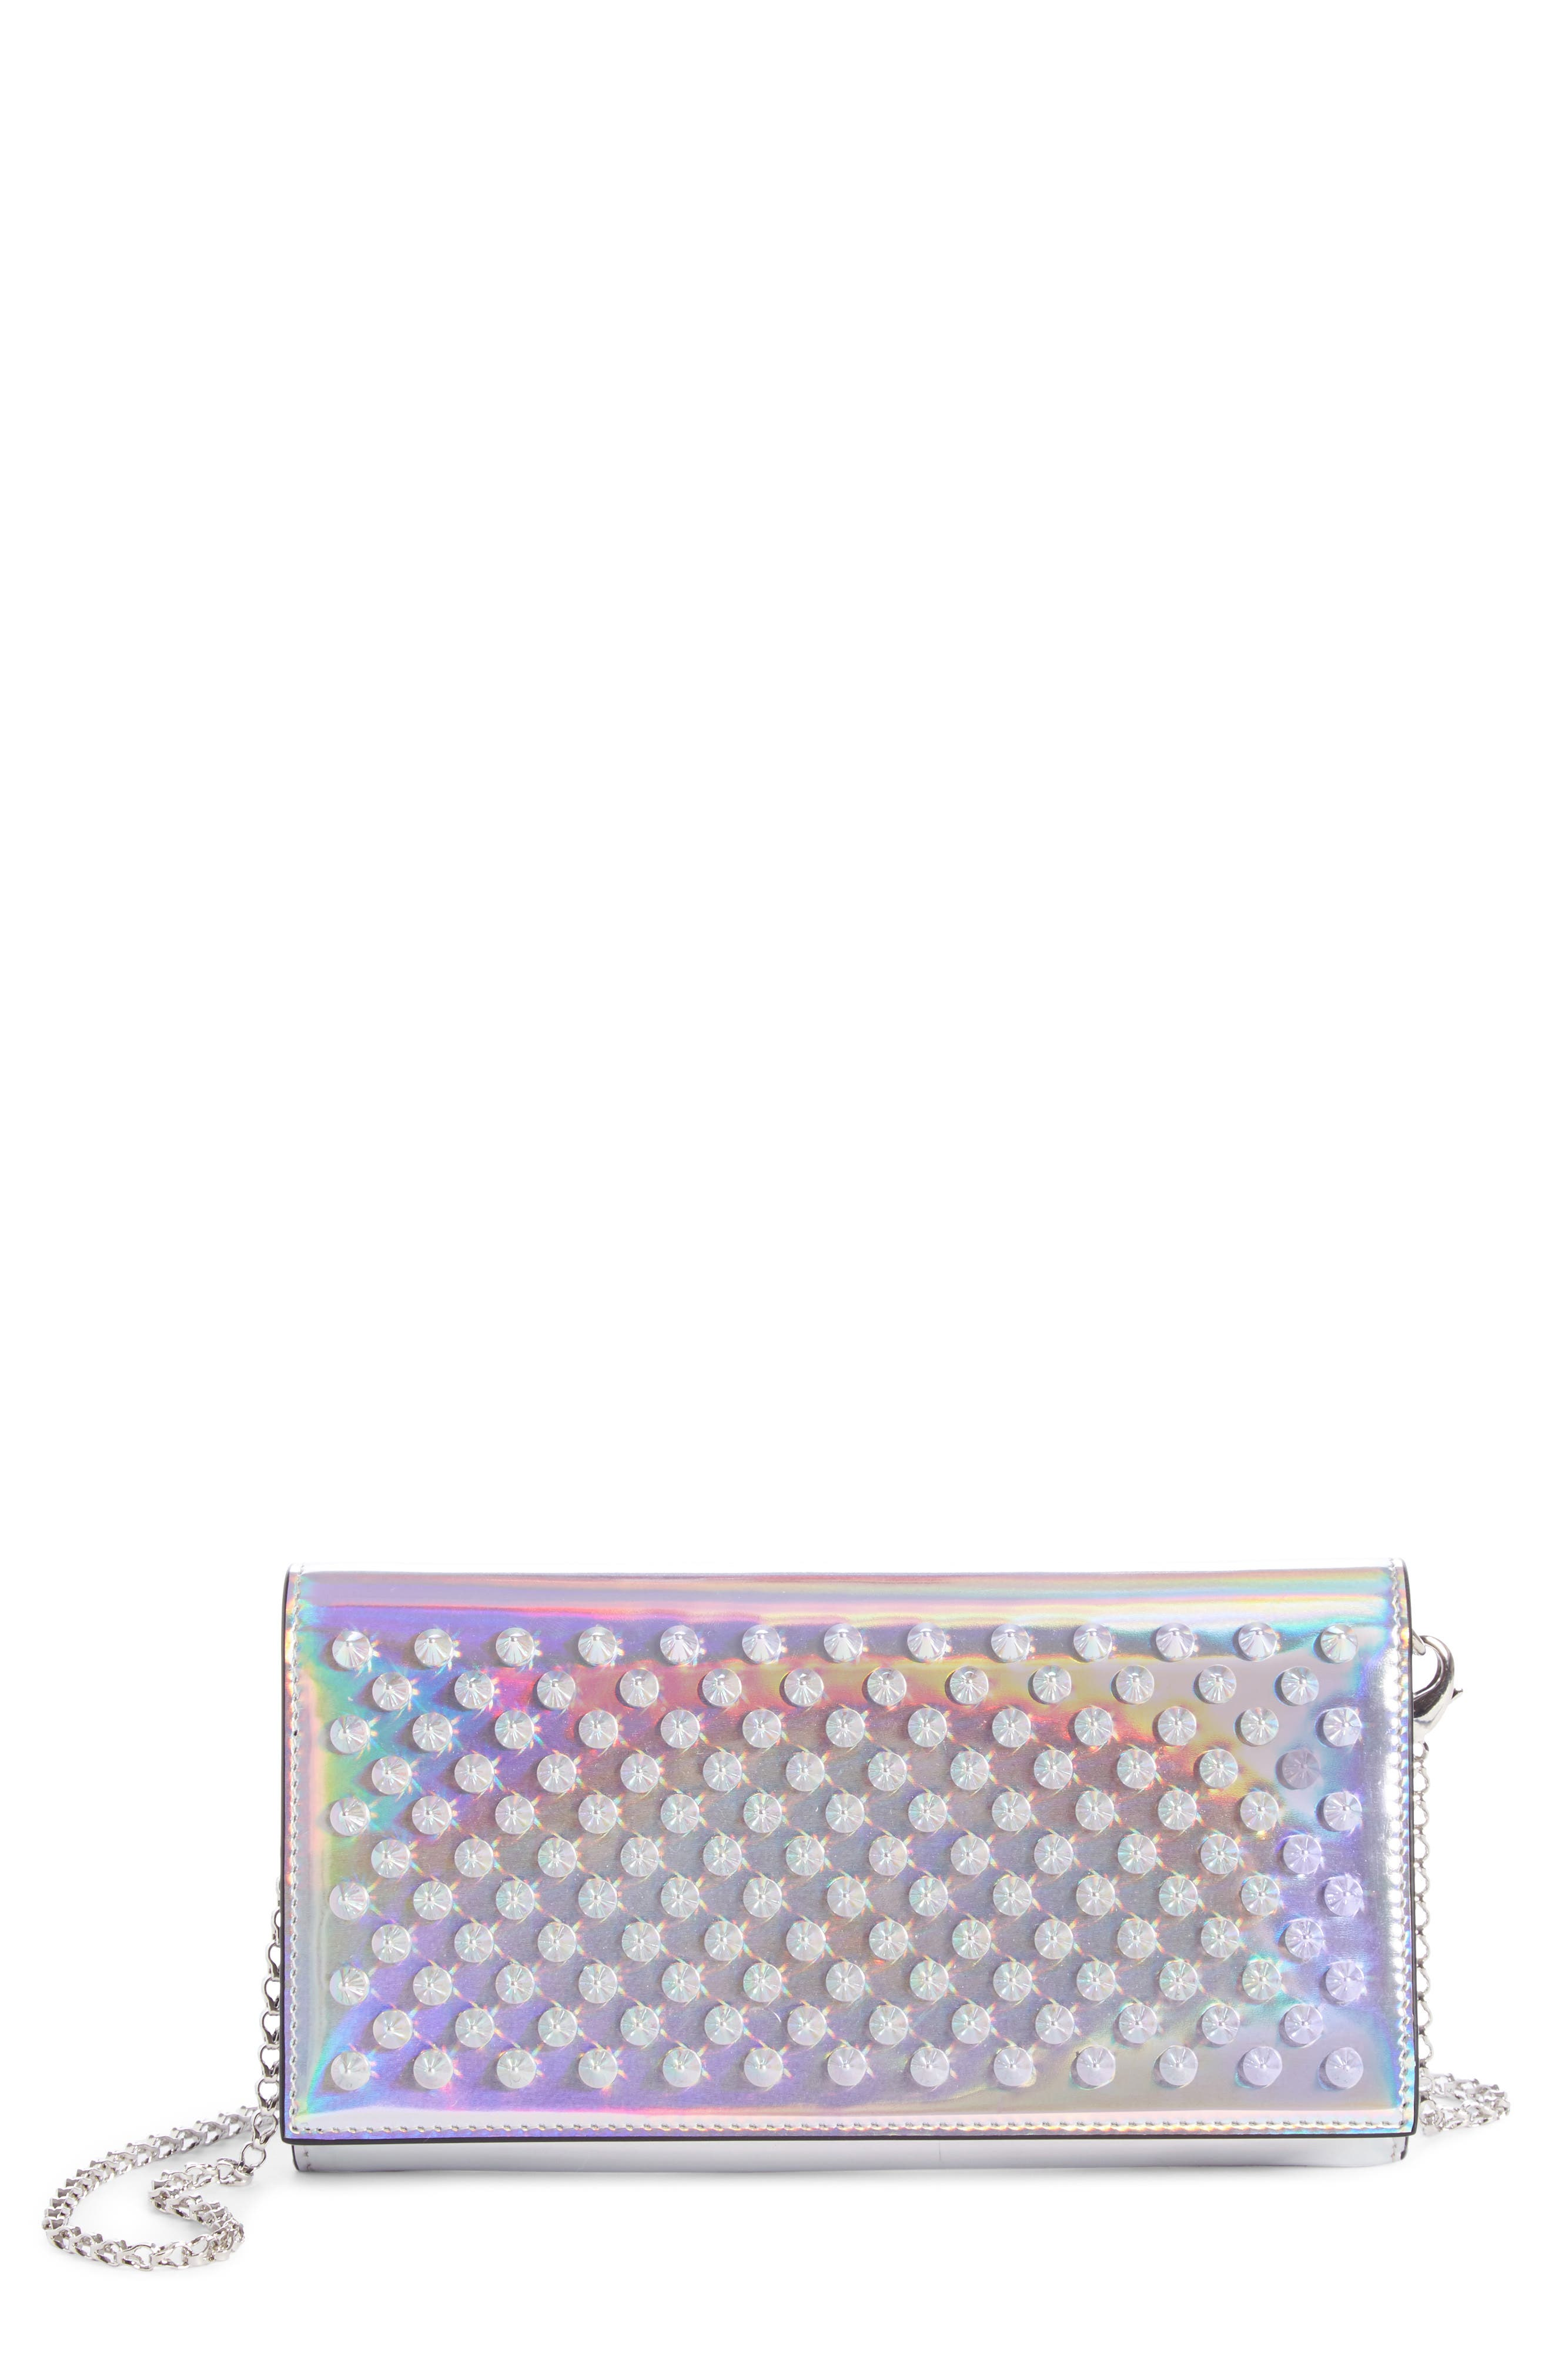 CHRISTIAN LOUBOUTIN Boudoir Metallic Leather Wallet on a Chain, Main, color, SILVER/ SILVER AB